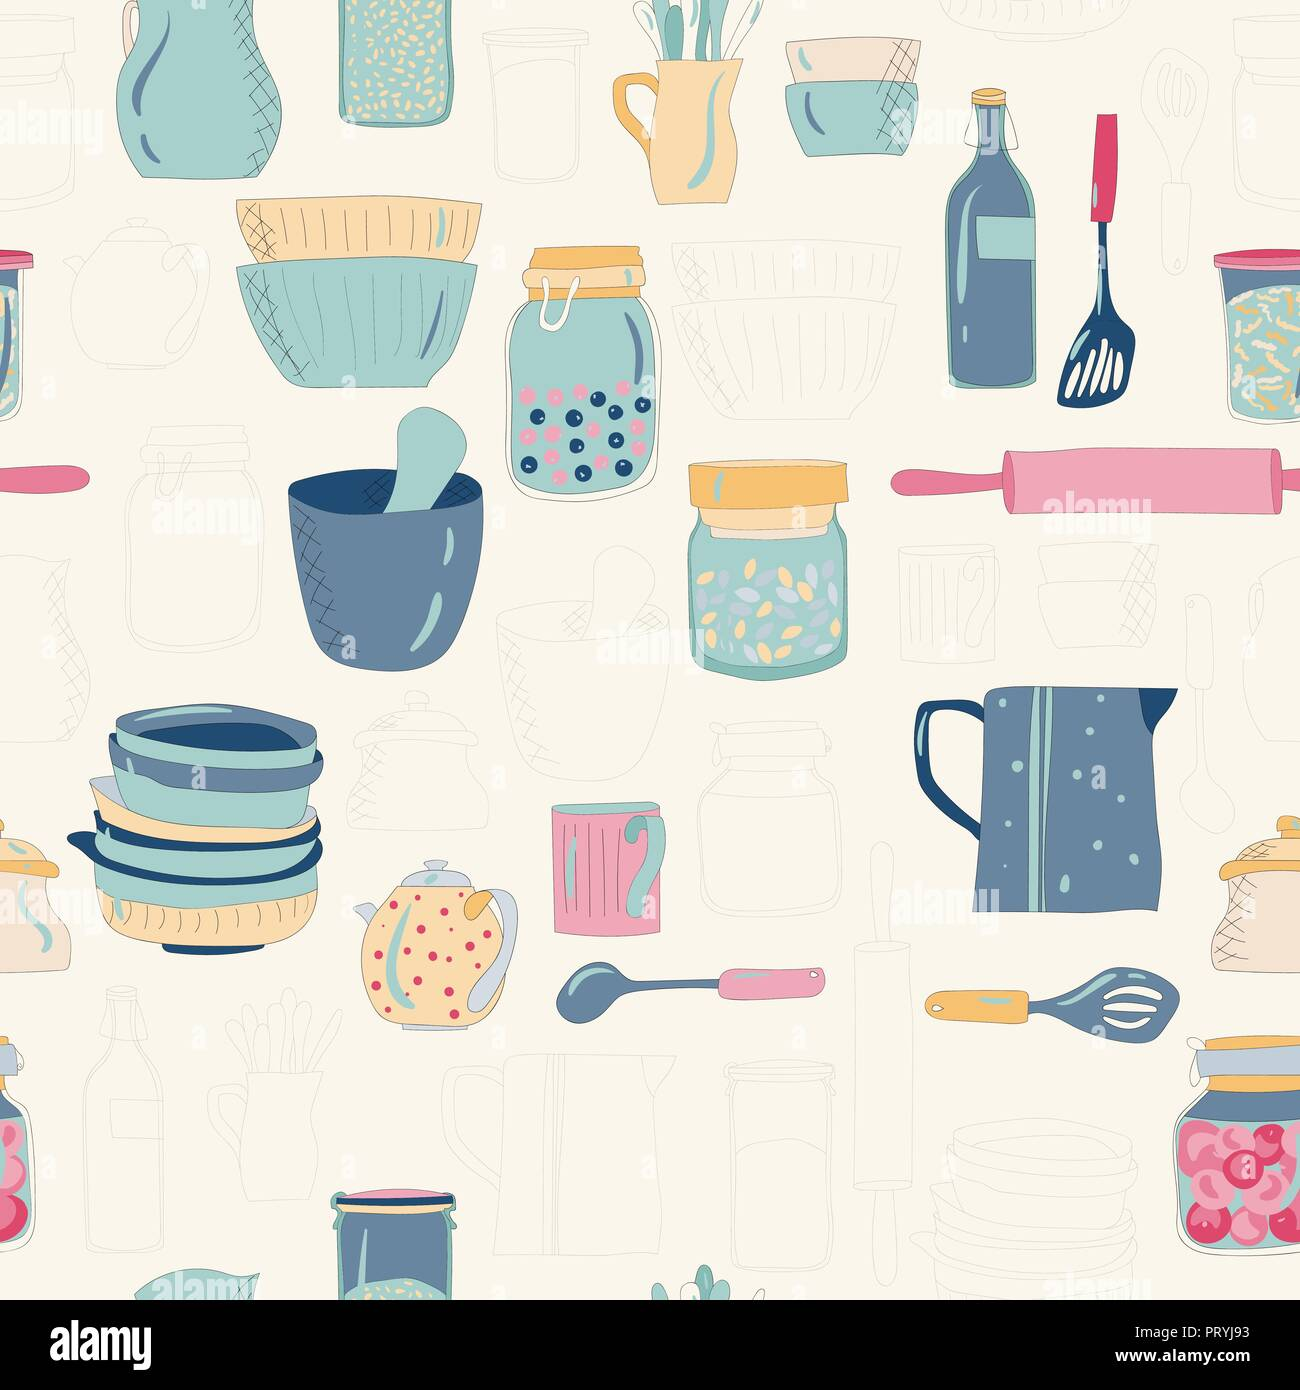 Colorful kitchen utensils, dishes, plates, cups, teapots. Pattern. on a dark background. - Stock Vector